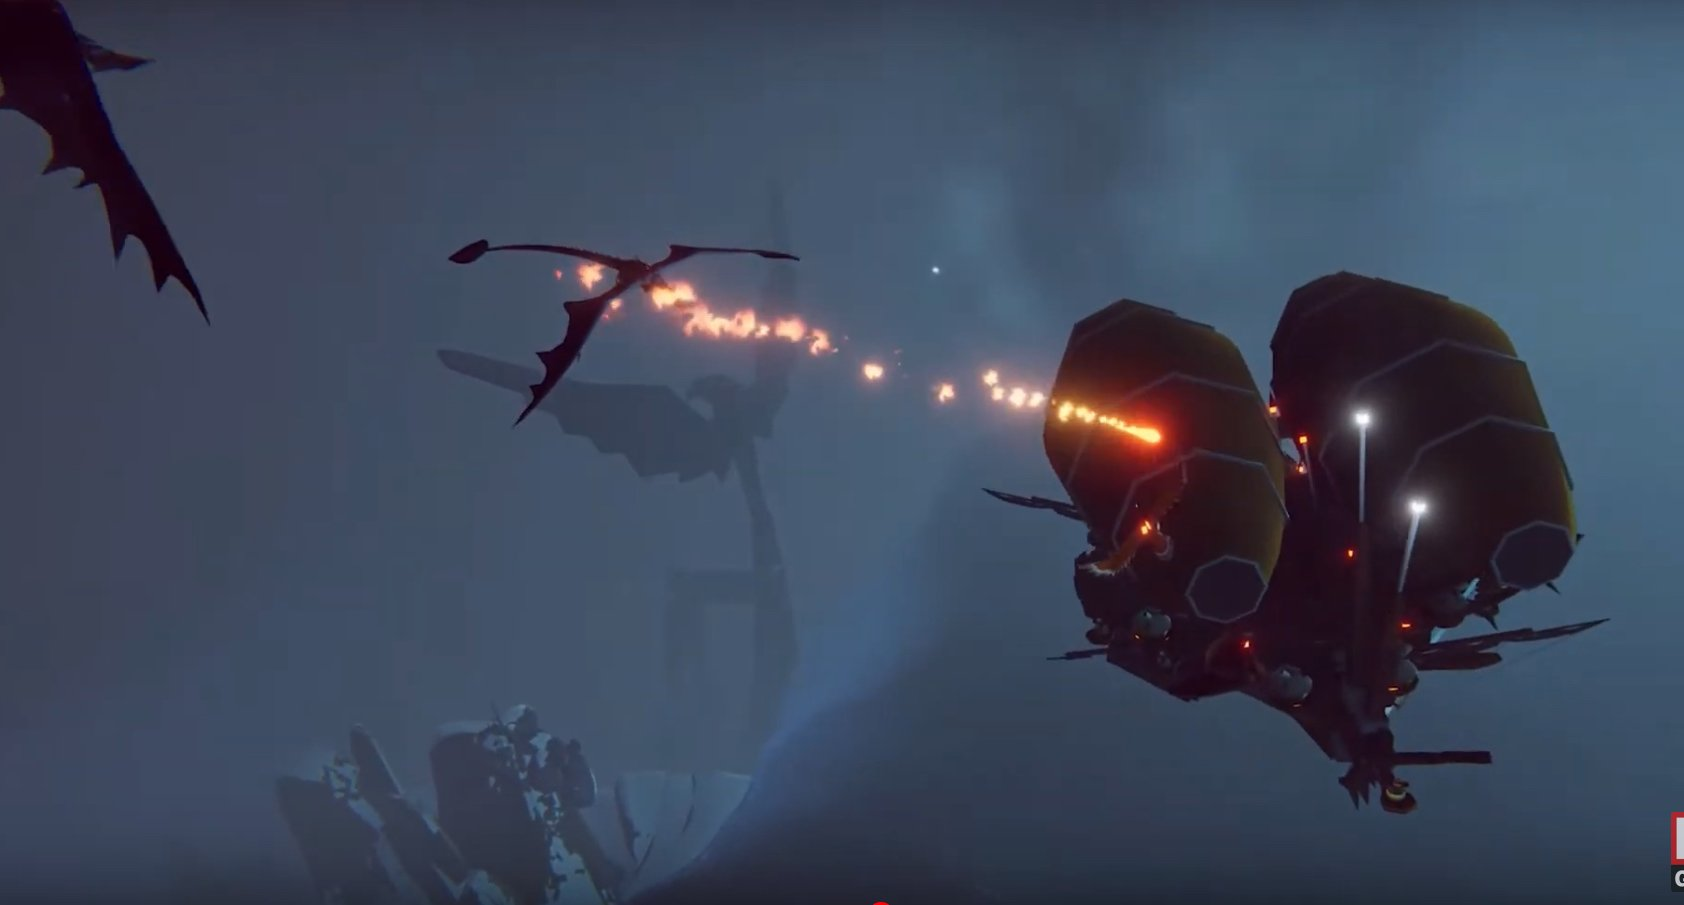 The Open-World Air Combat Game The Falconeer Is Launching November 10